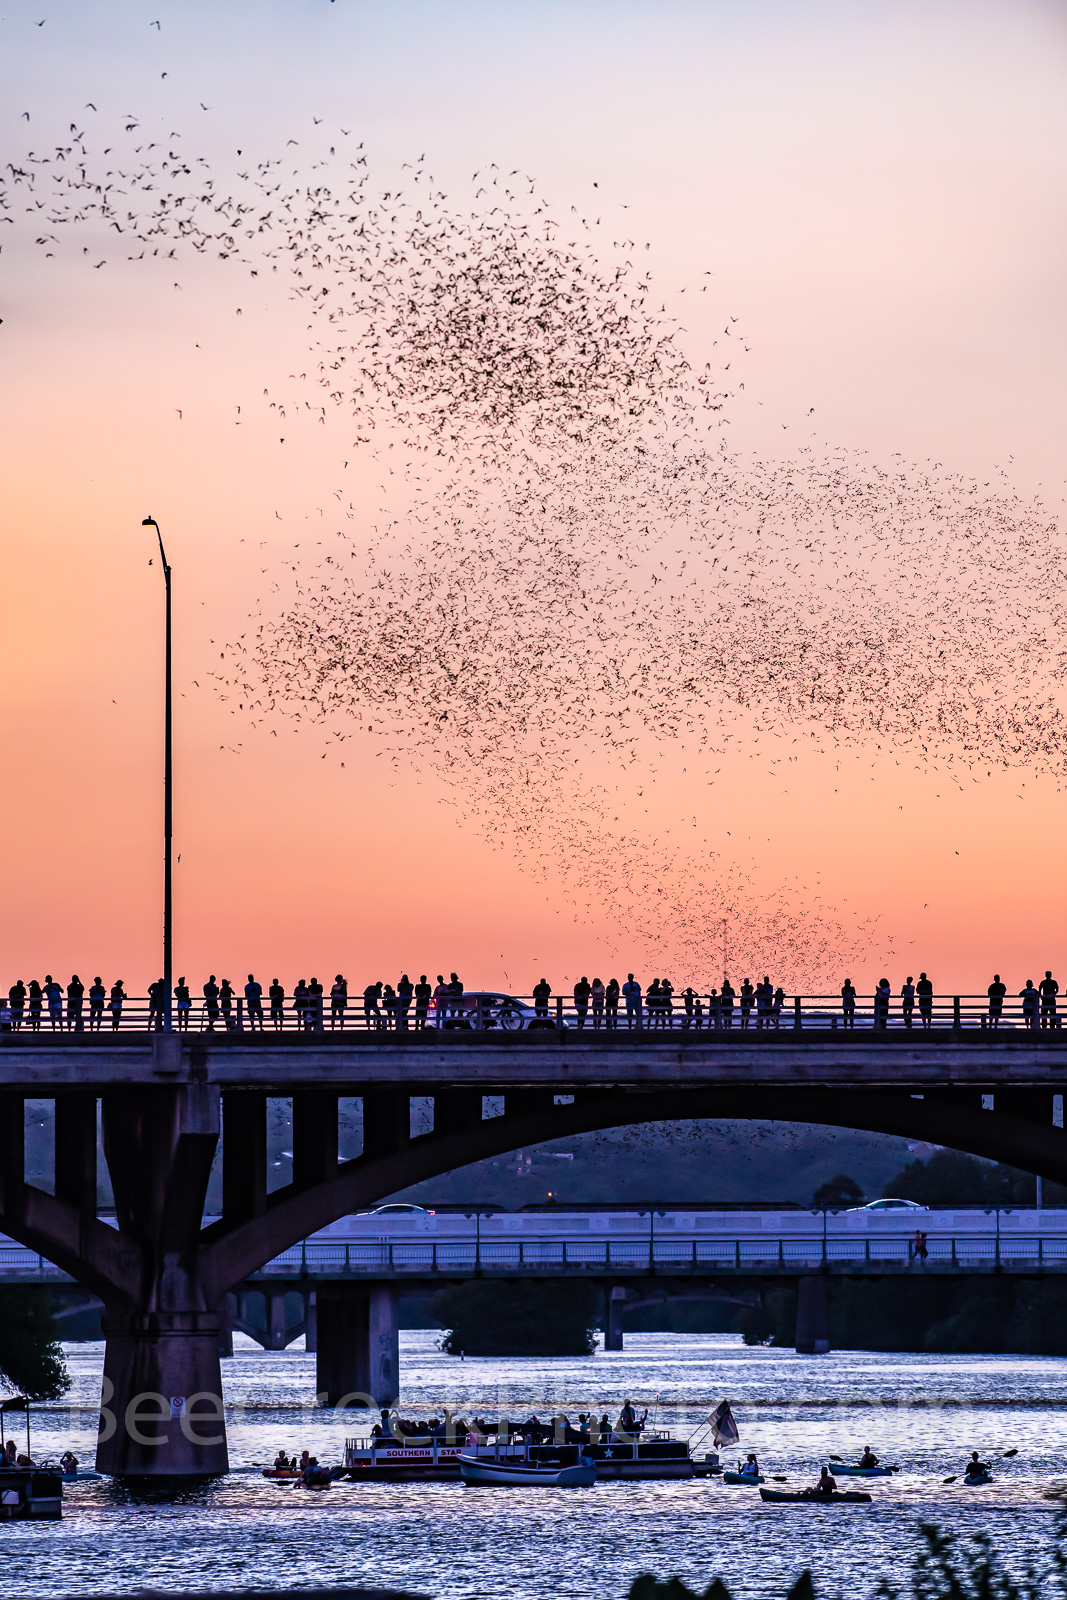 Austin Bats Vertical, Austin, Congress, Bats, bridge, downtown, Ann Richard Congress Bridge, dusk, people, crowds, Austin bat watch, downtown, boat, tour boats,, photo